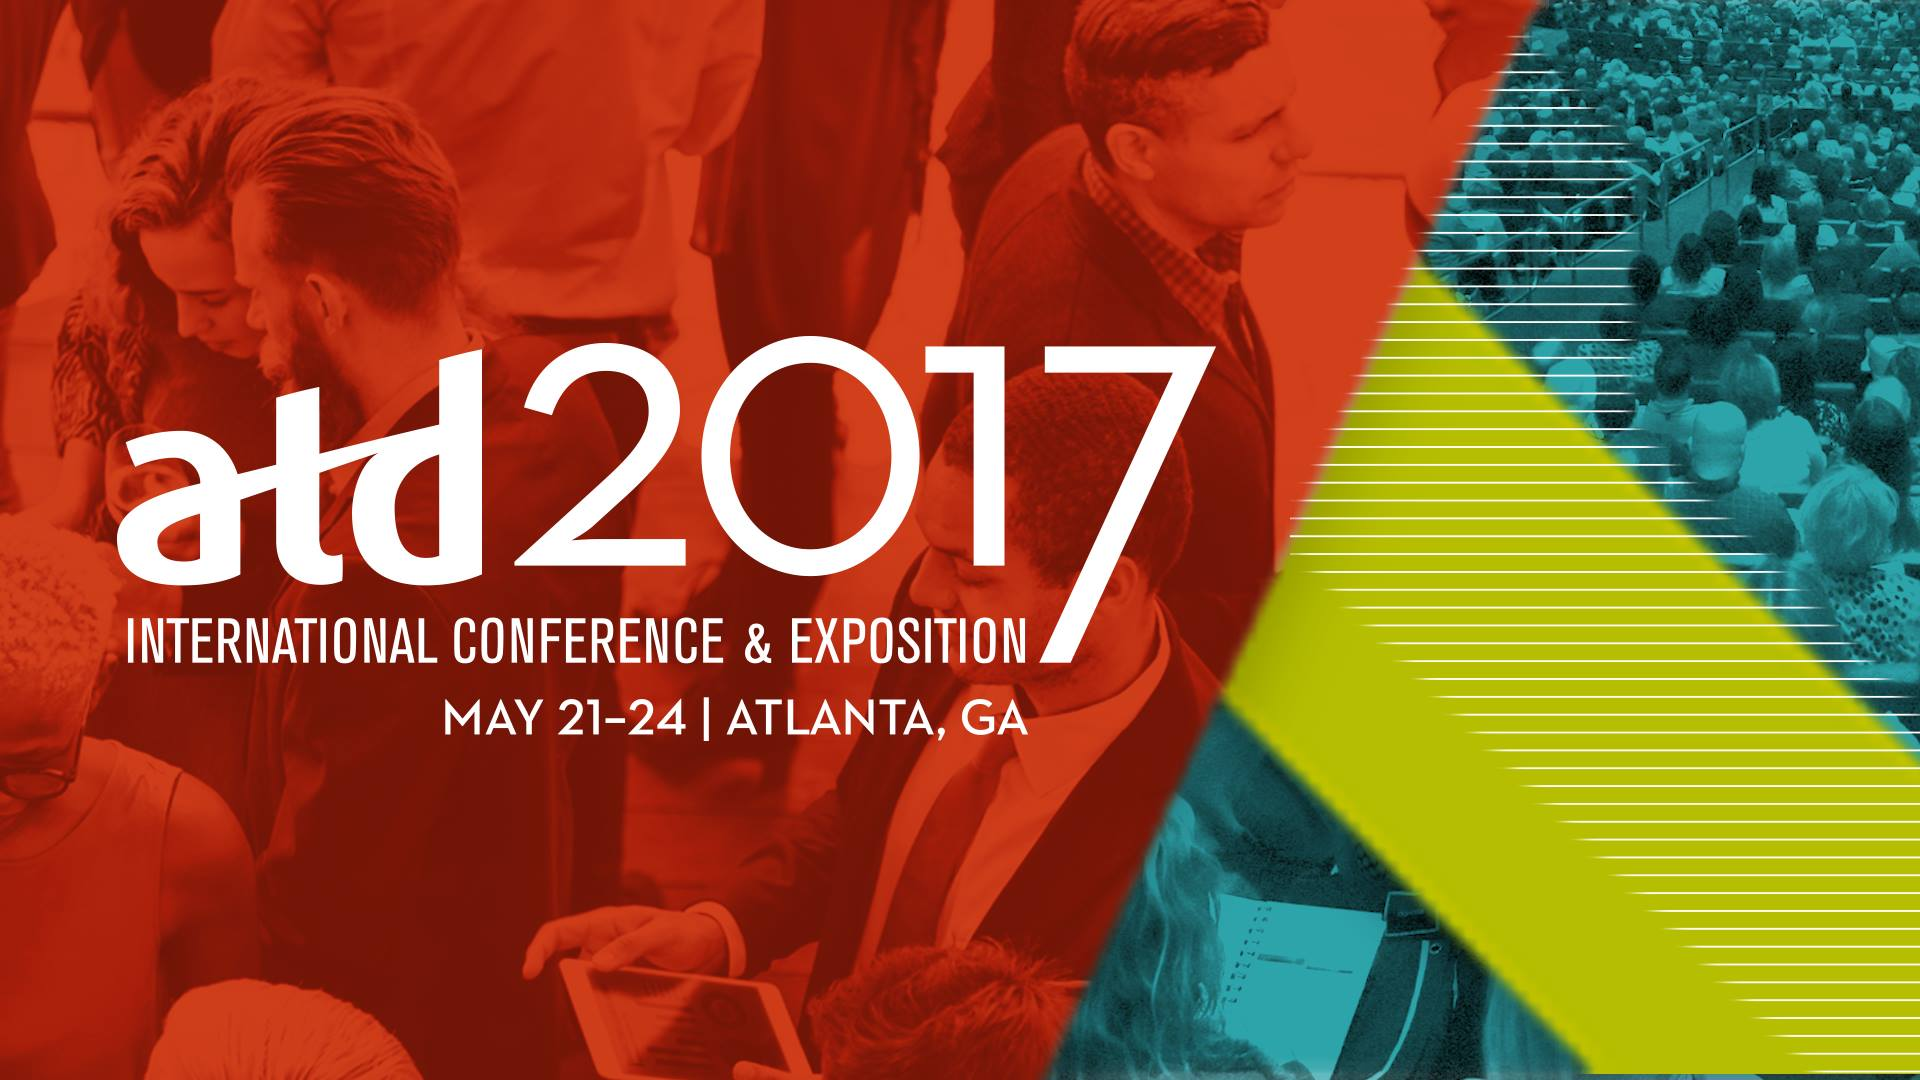 ATD Conference promotion image, courtesy of ATD.